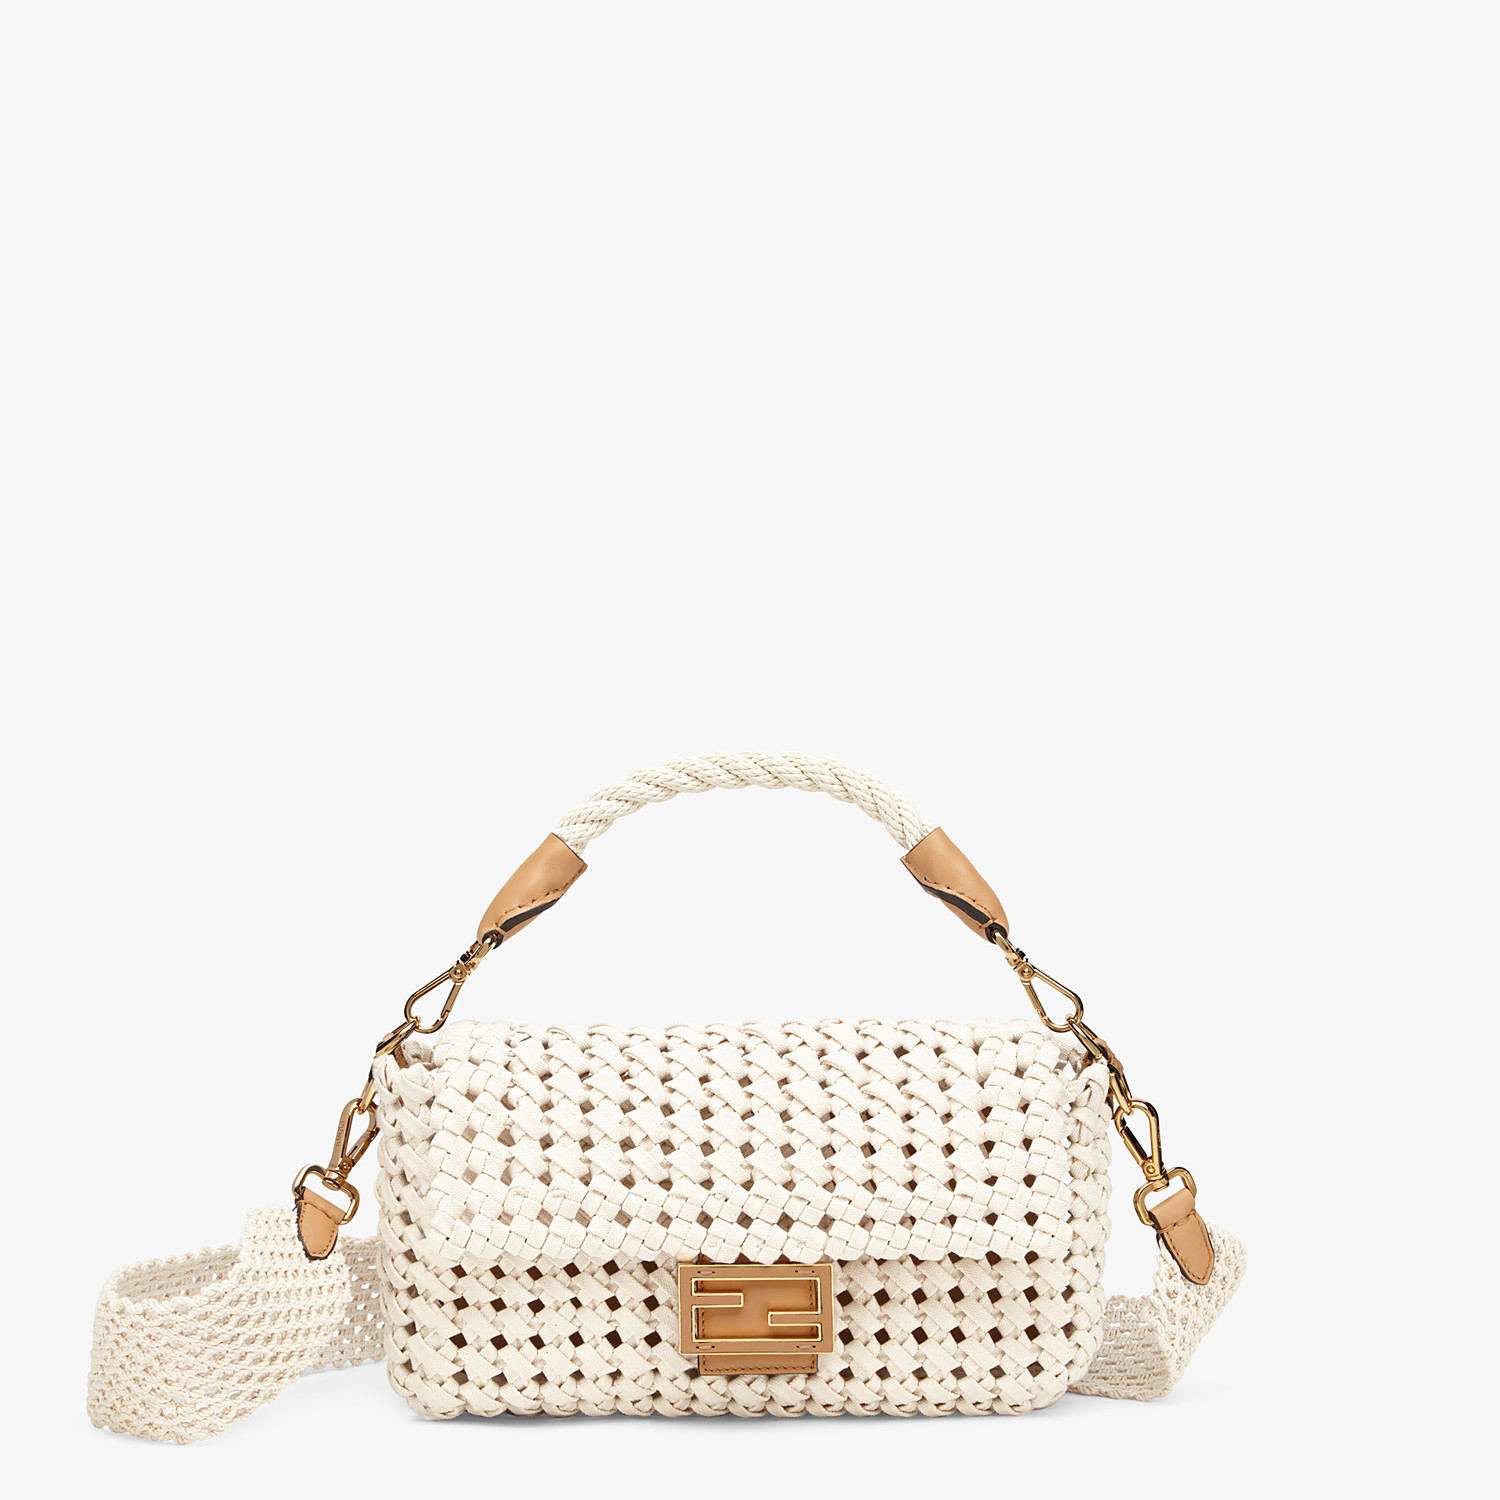 FENDI BAGUETTE - Tasche aus geflochtenem Canvas in Beige - view 1 detail